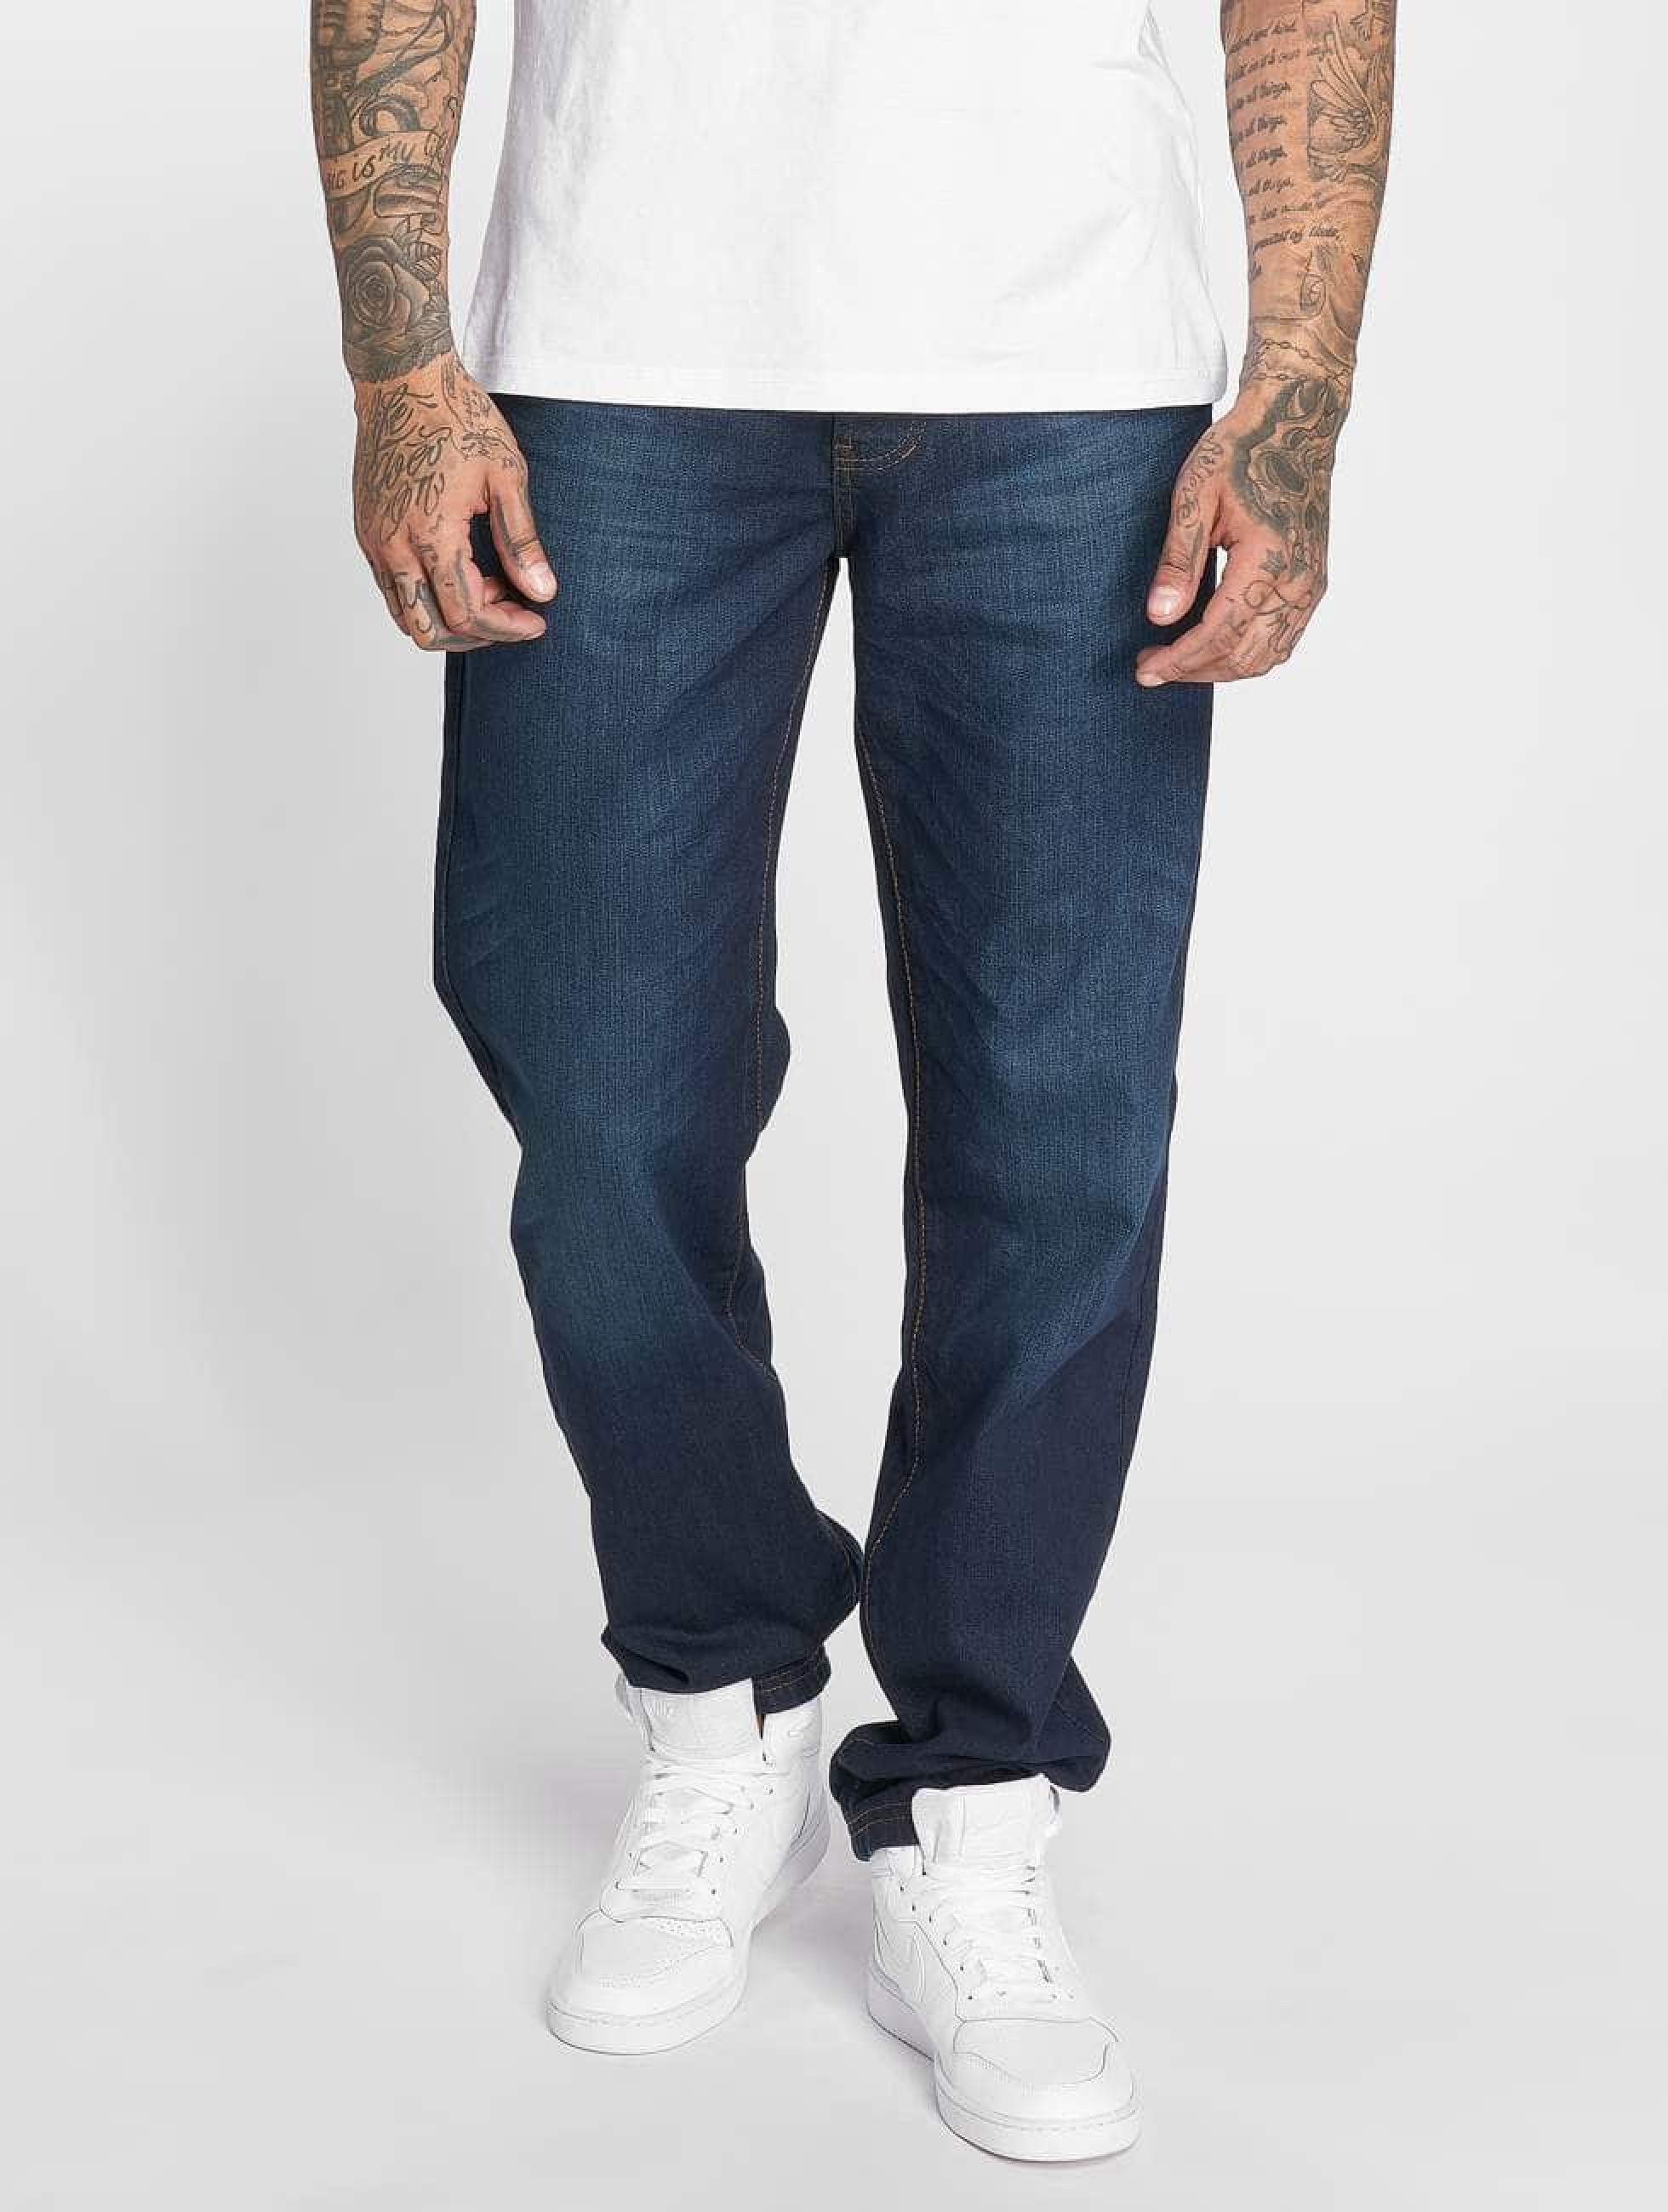 Thug Life / Carrot Fit Jeans B . Denim in blue W 34 L 34